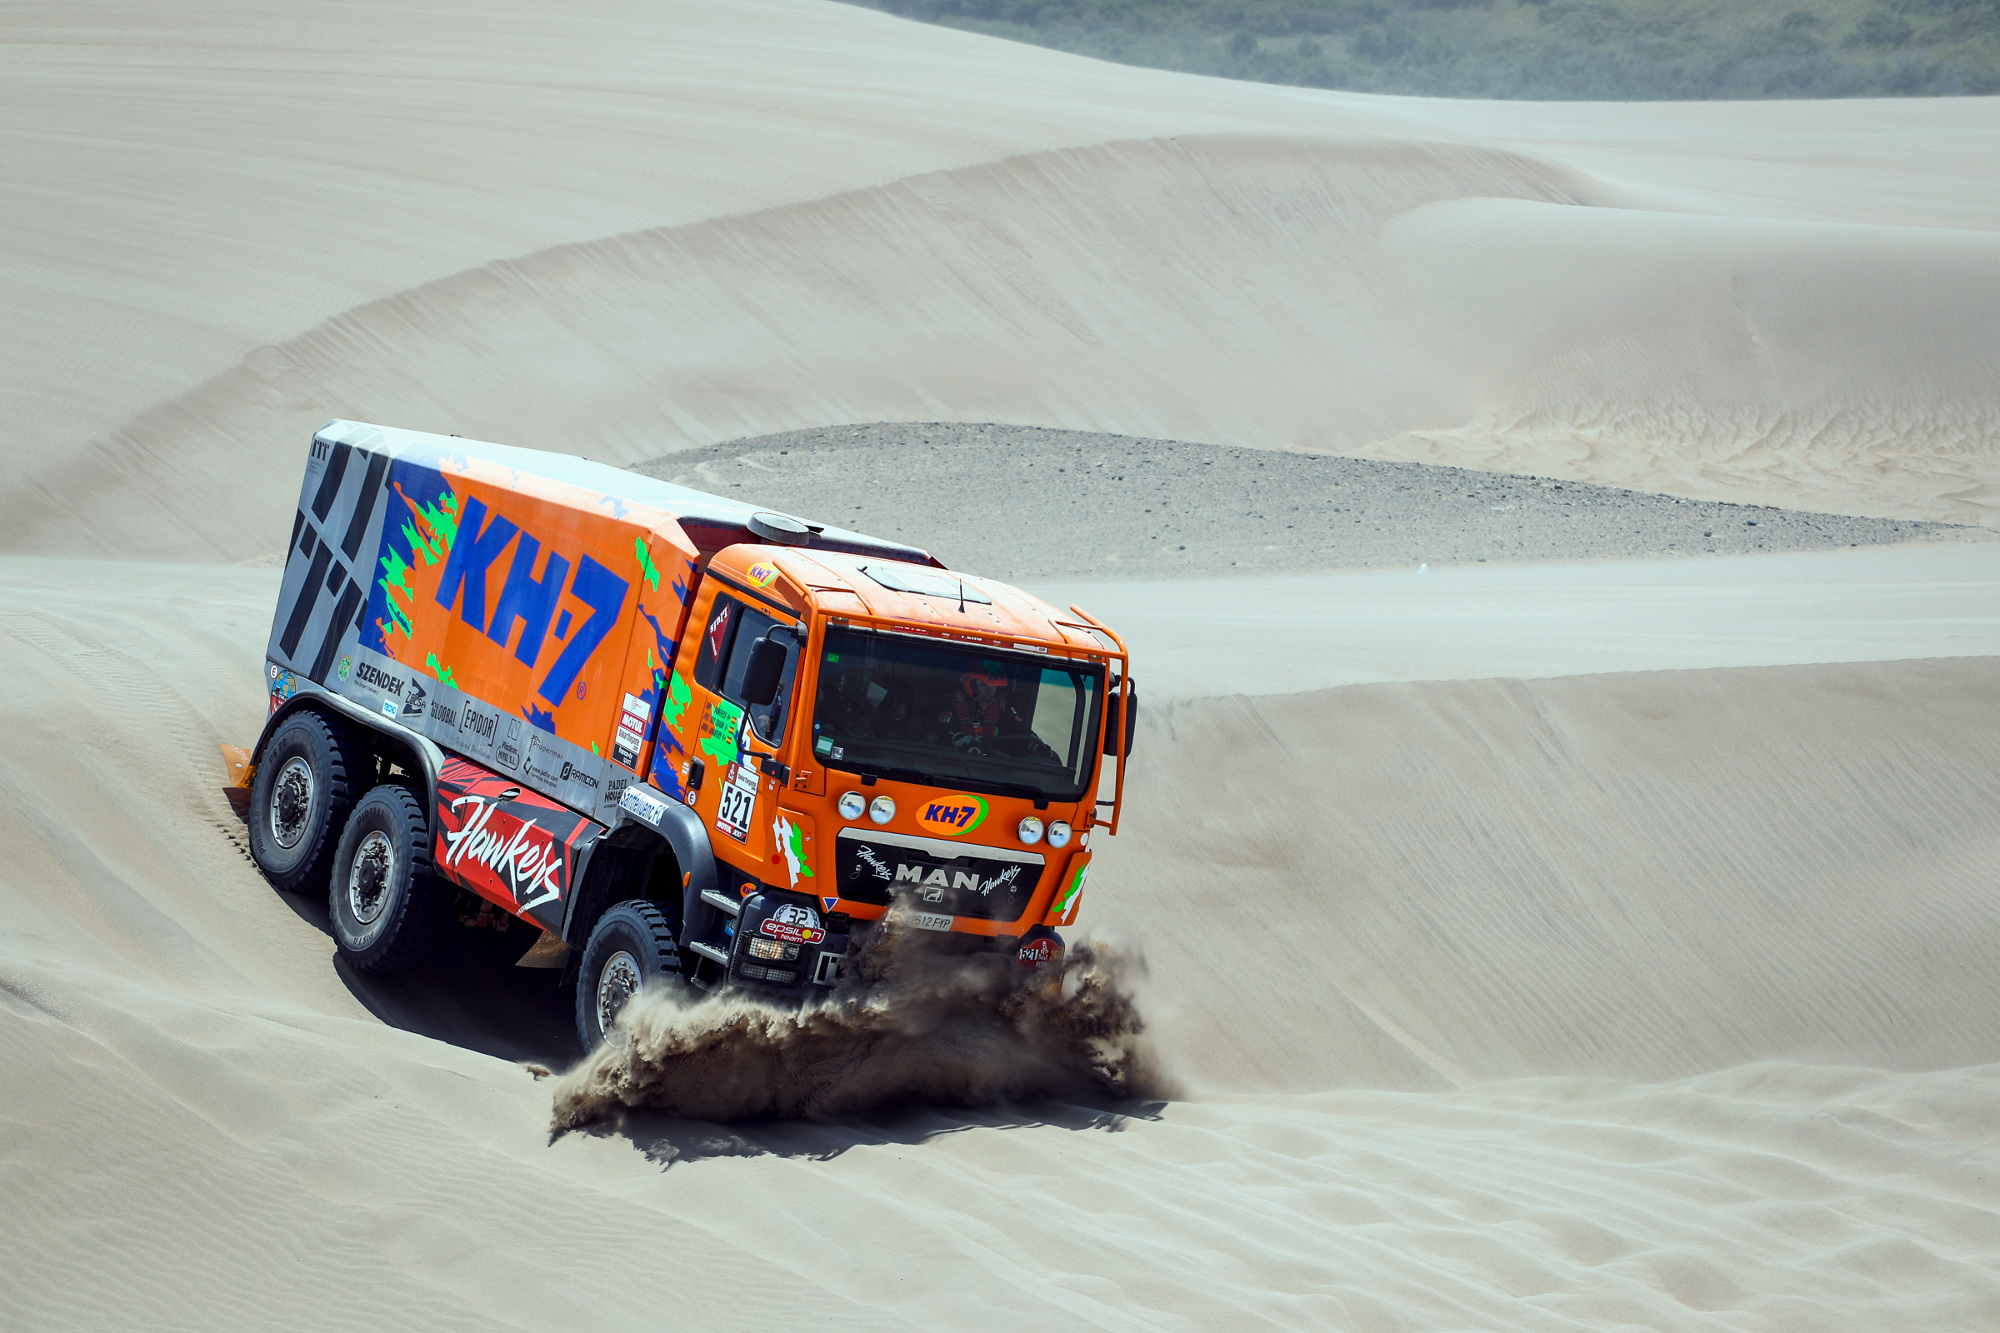 521 JUVANTENY Jordi (spa); CRIADO Jose Luis (spa); DOMENECH Xavier (spa); Man; Epsilon; Truck; Camion; action during the Dakar 2019; Stage 6; Arequipa - San Juan de Marcona; peru; on january 13 - Photo Frederic Le Floc'h / DPPI